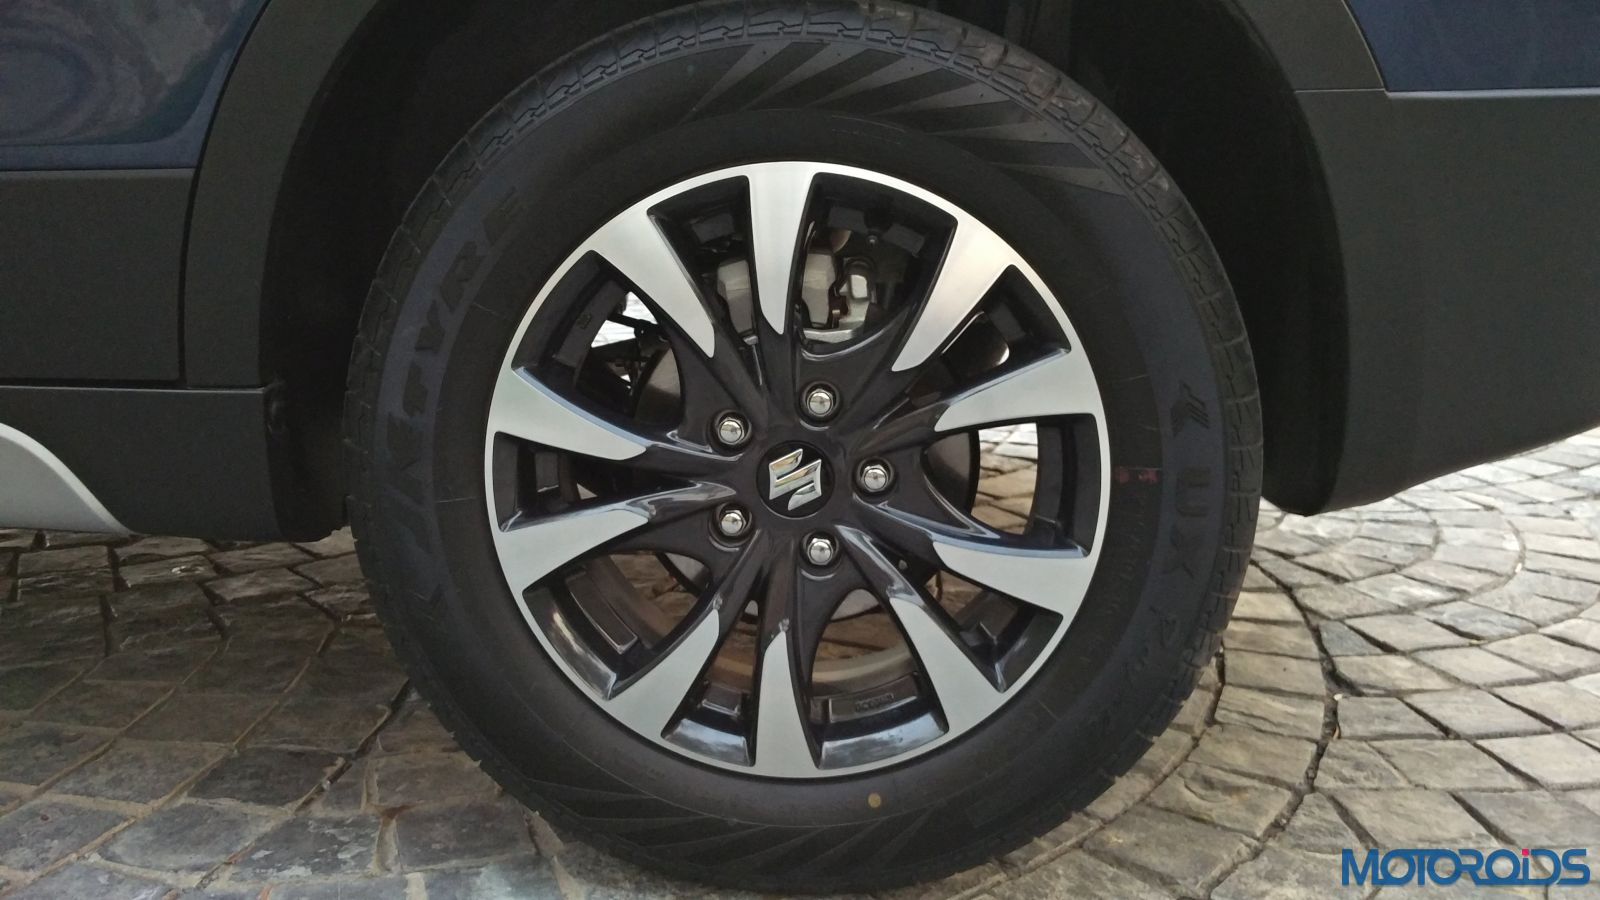 New-Maruti-Suzuki-S-Cross-Alpha-Review-alloy-wheel-pattern24